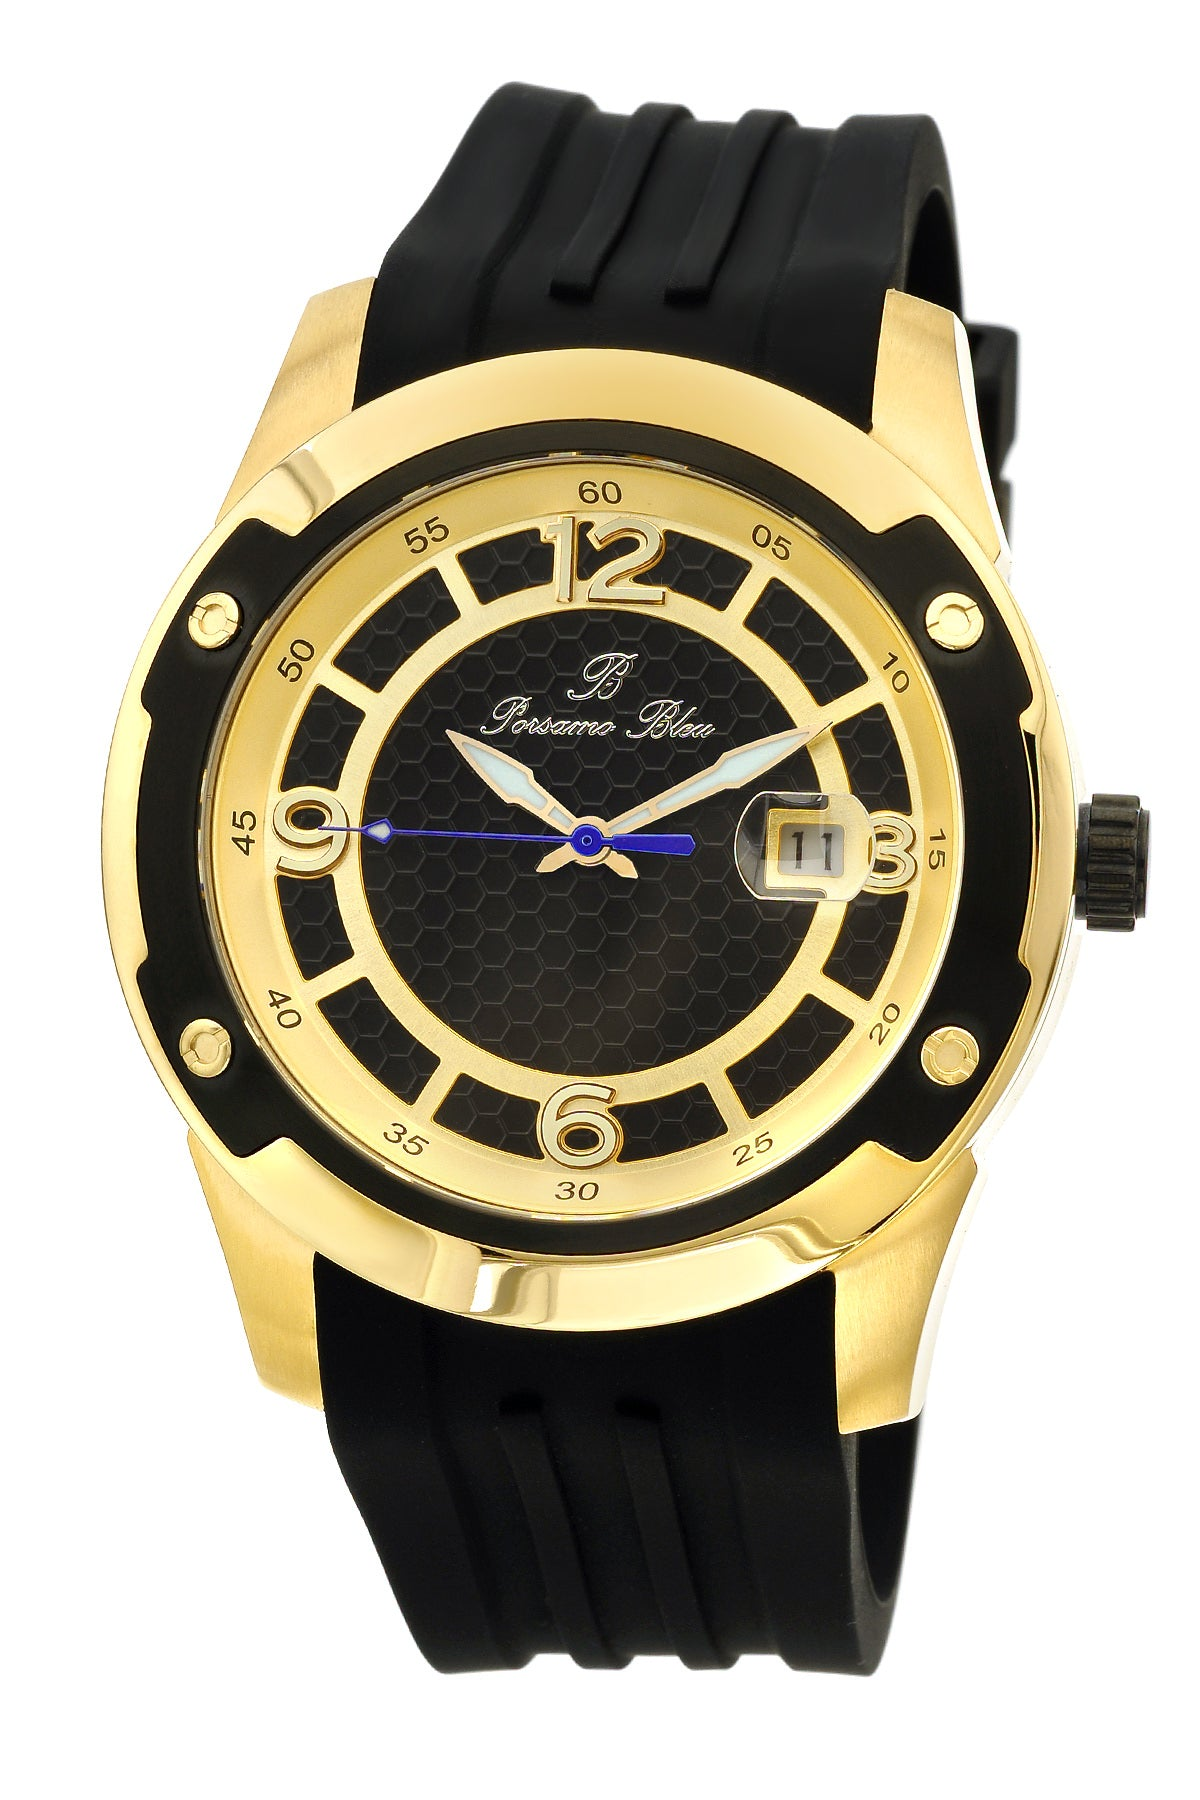 Porsamo Bleu Tokyo luxury Automatic men's watch, silicone strap, gold, black 171BTOR